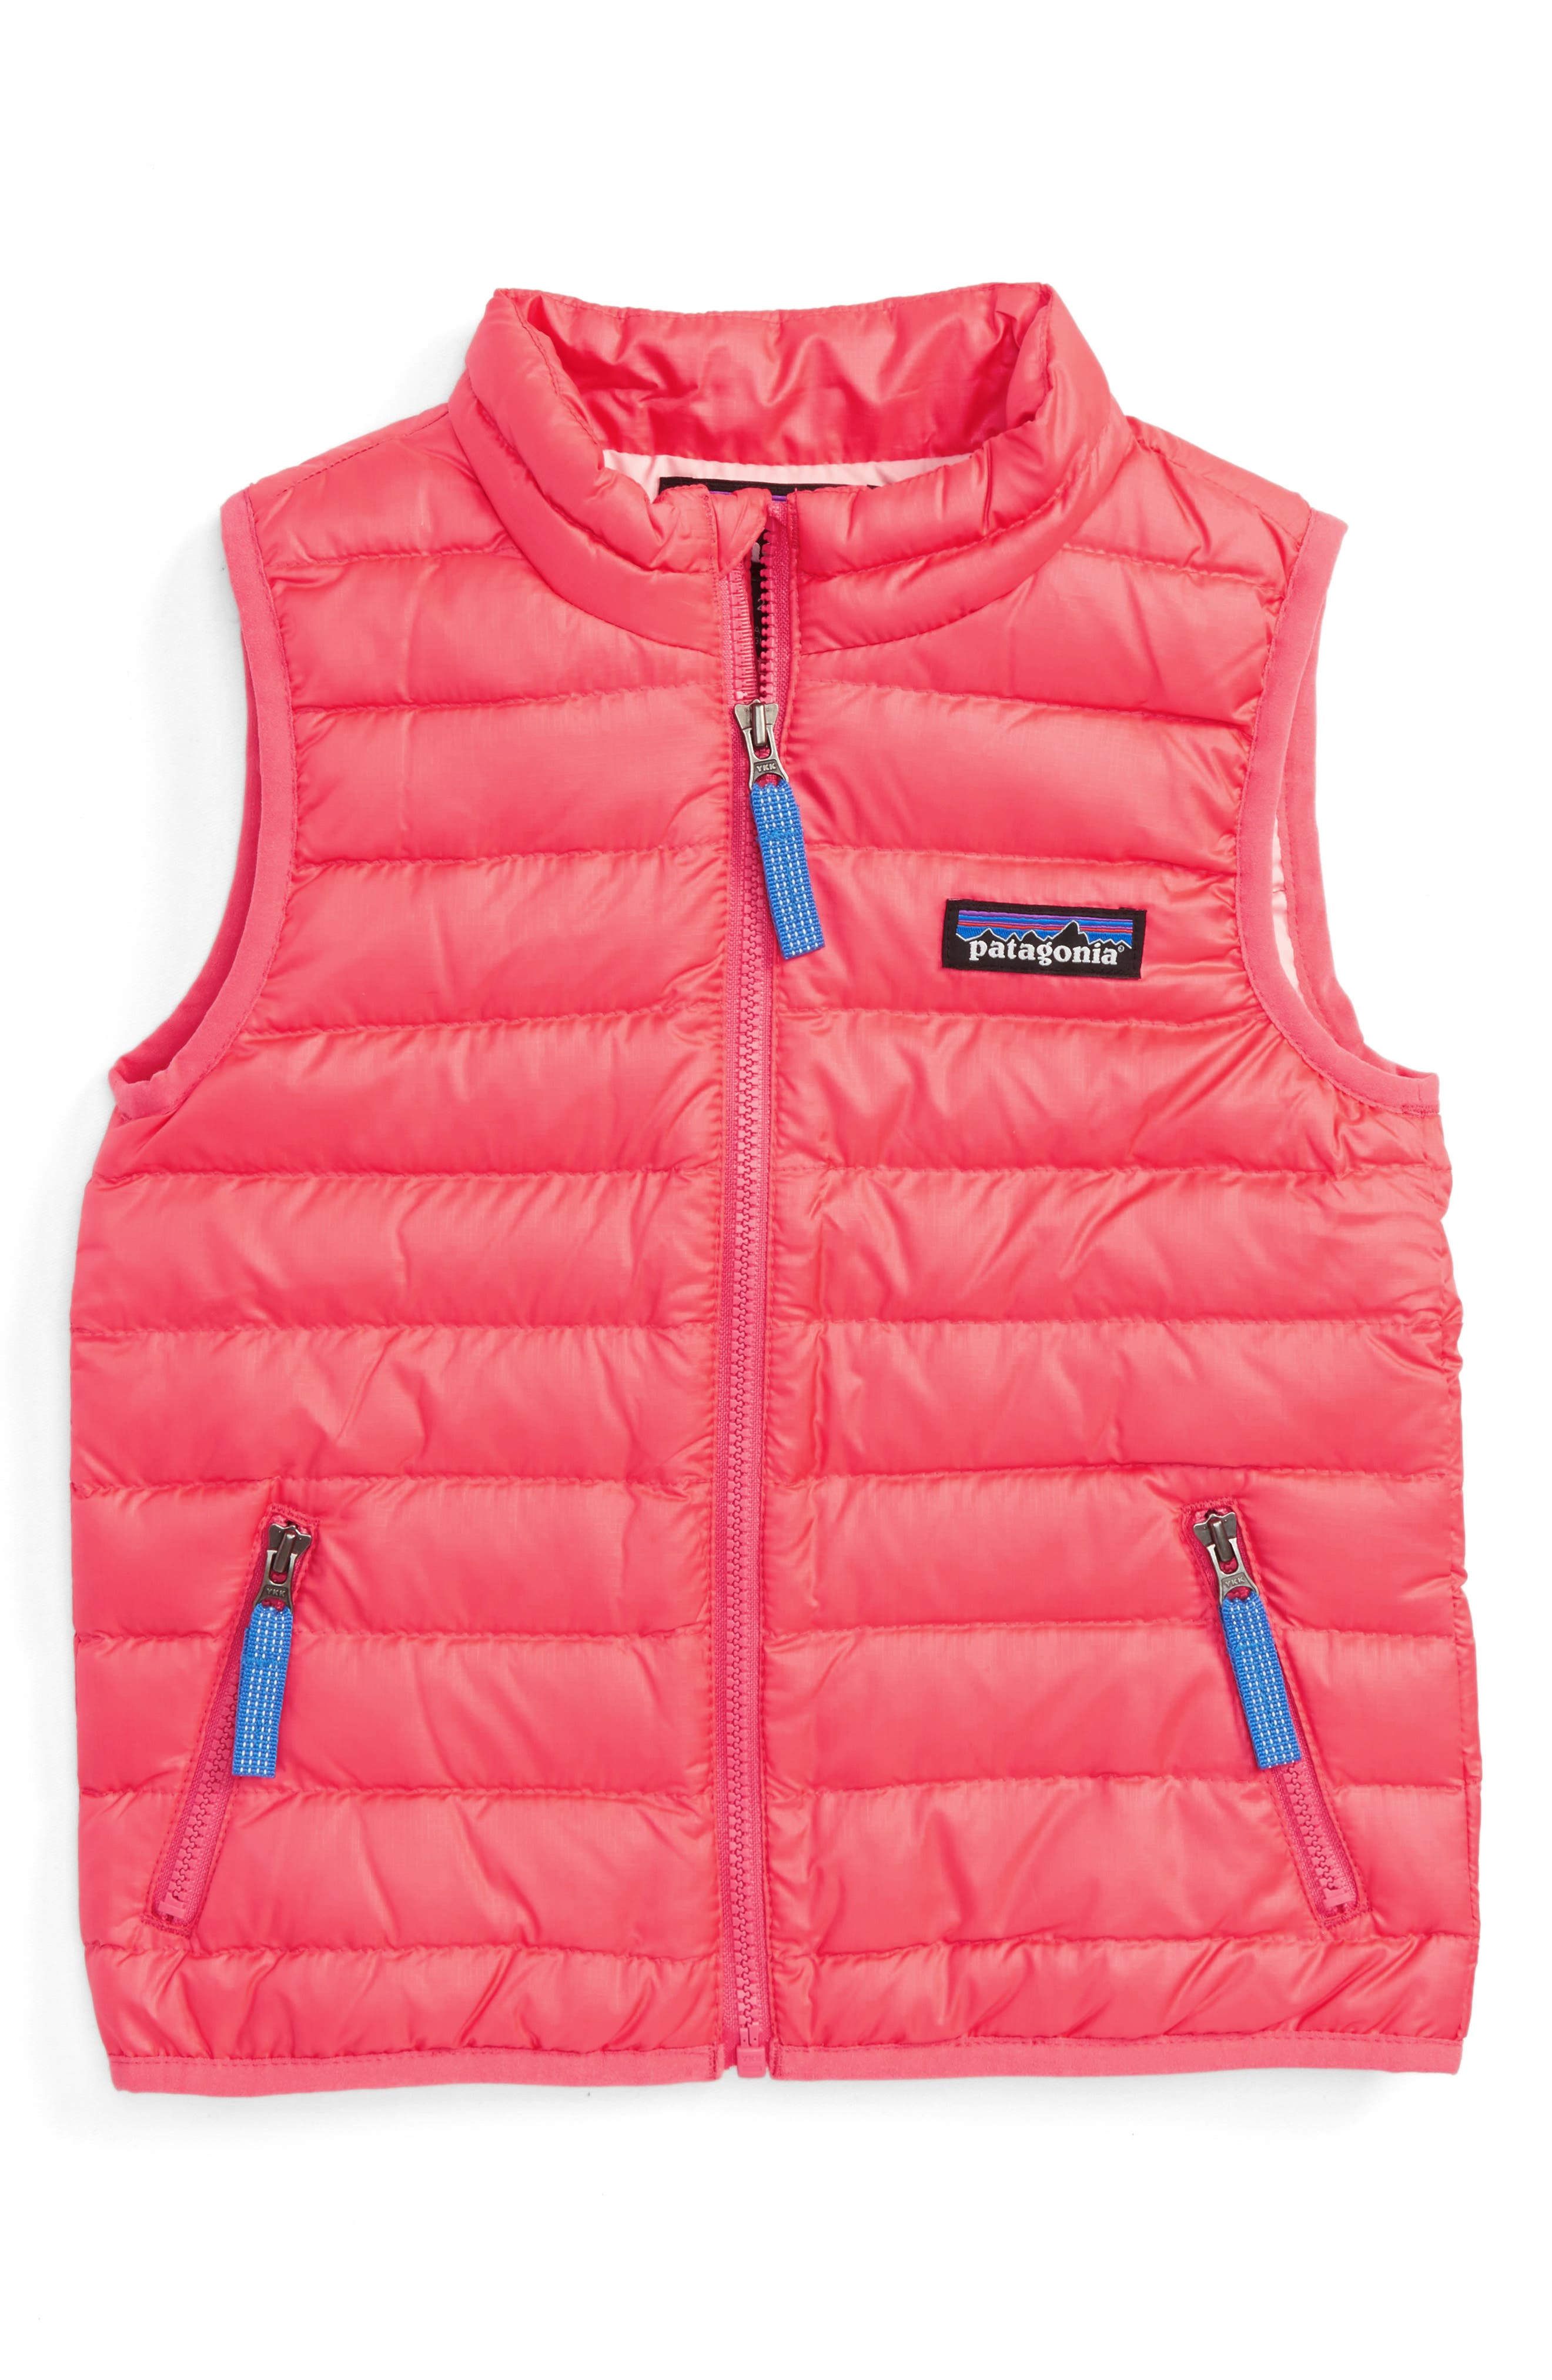 600-Fill Down Sweater Vest,                         Main,                         color, Indy Pink